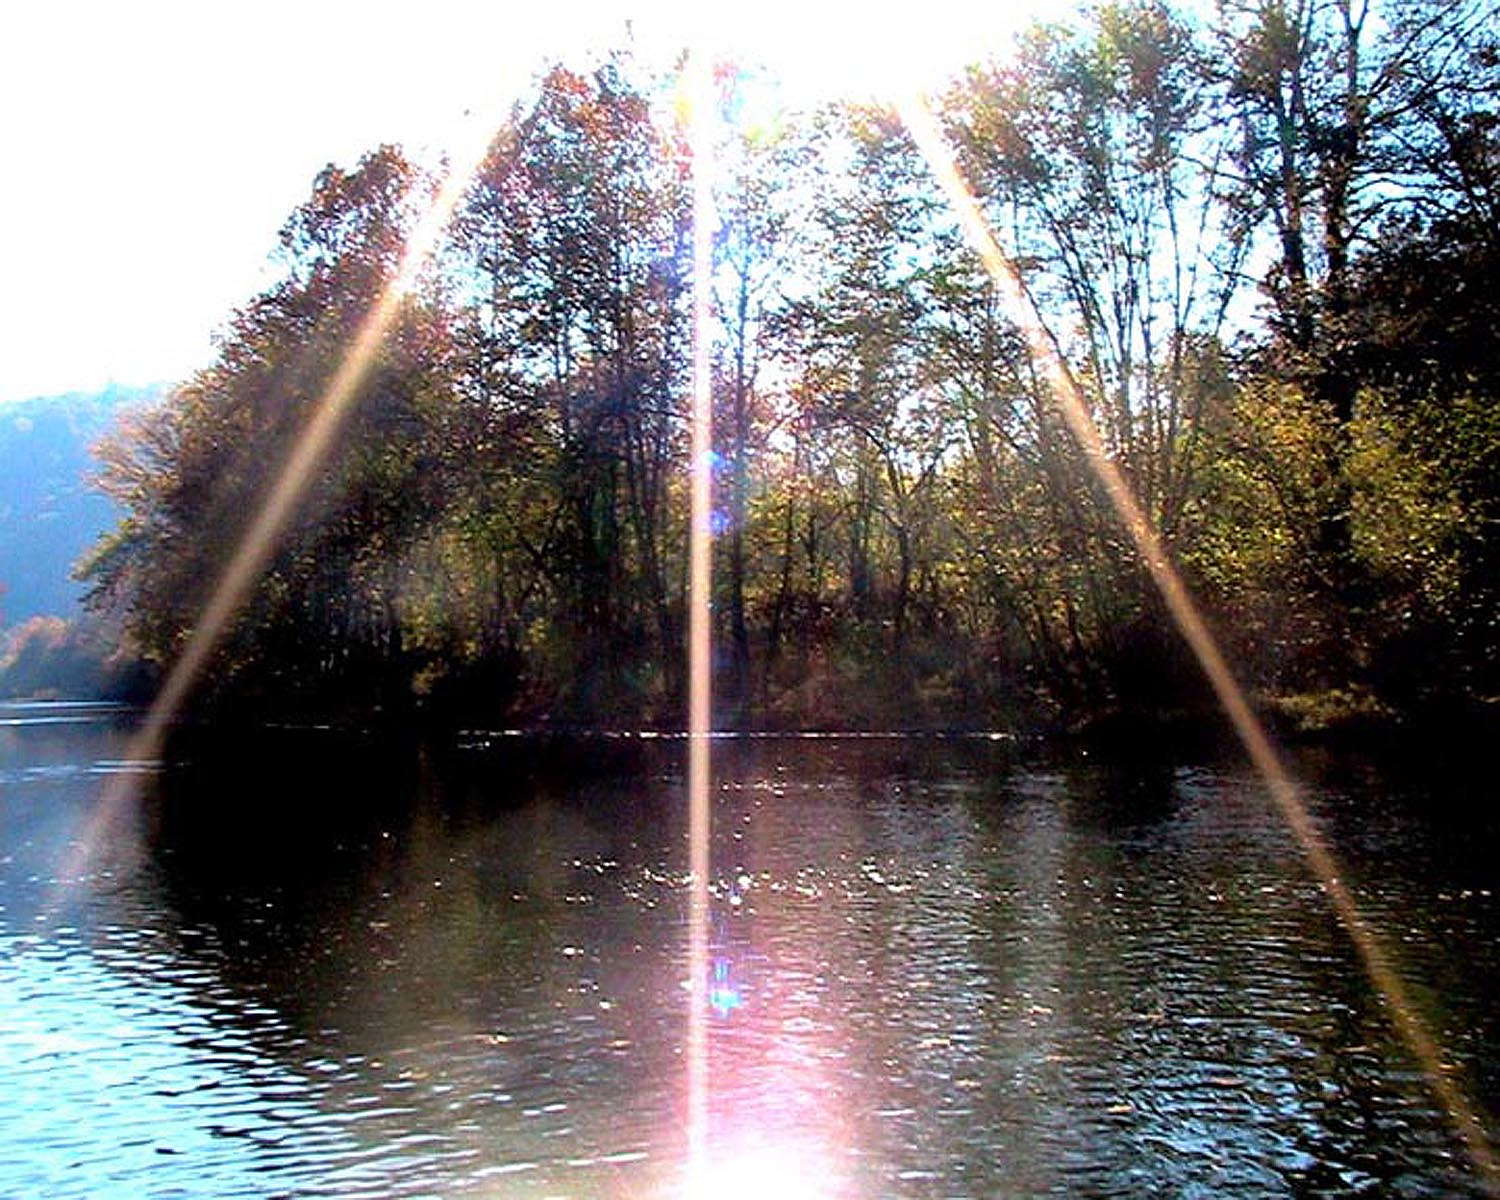 Bosch10 - Sunburst Over River